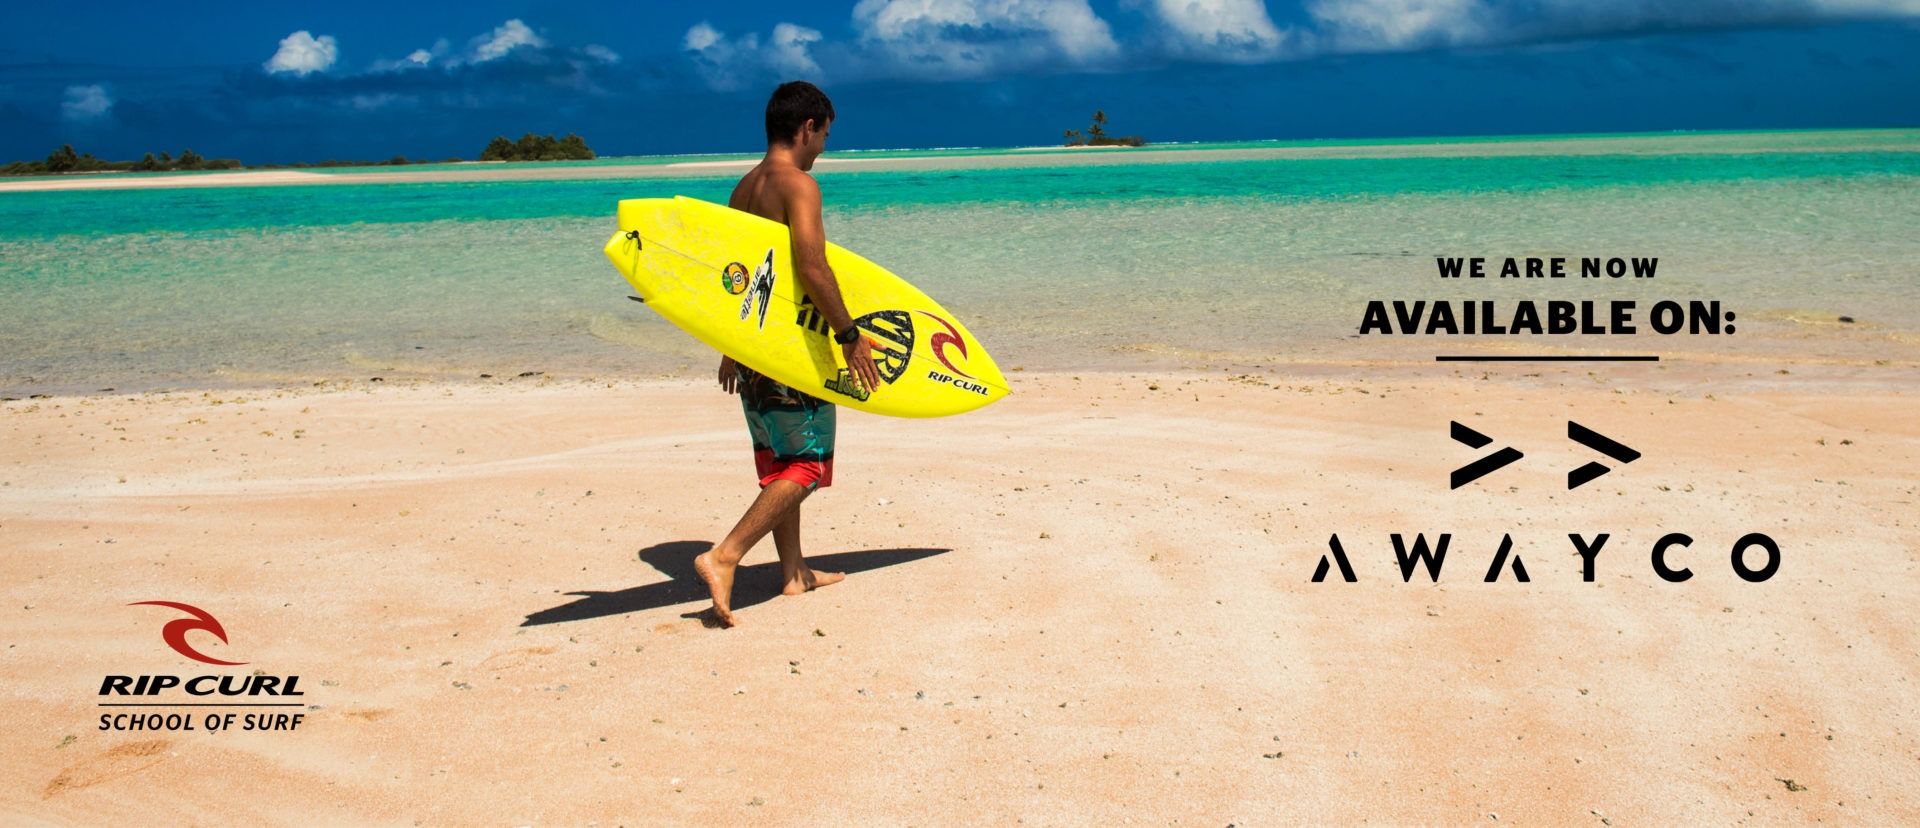 rip curl school of surf rental is now available on awayco